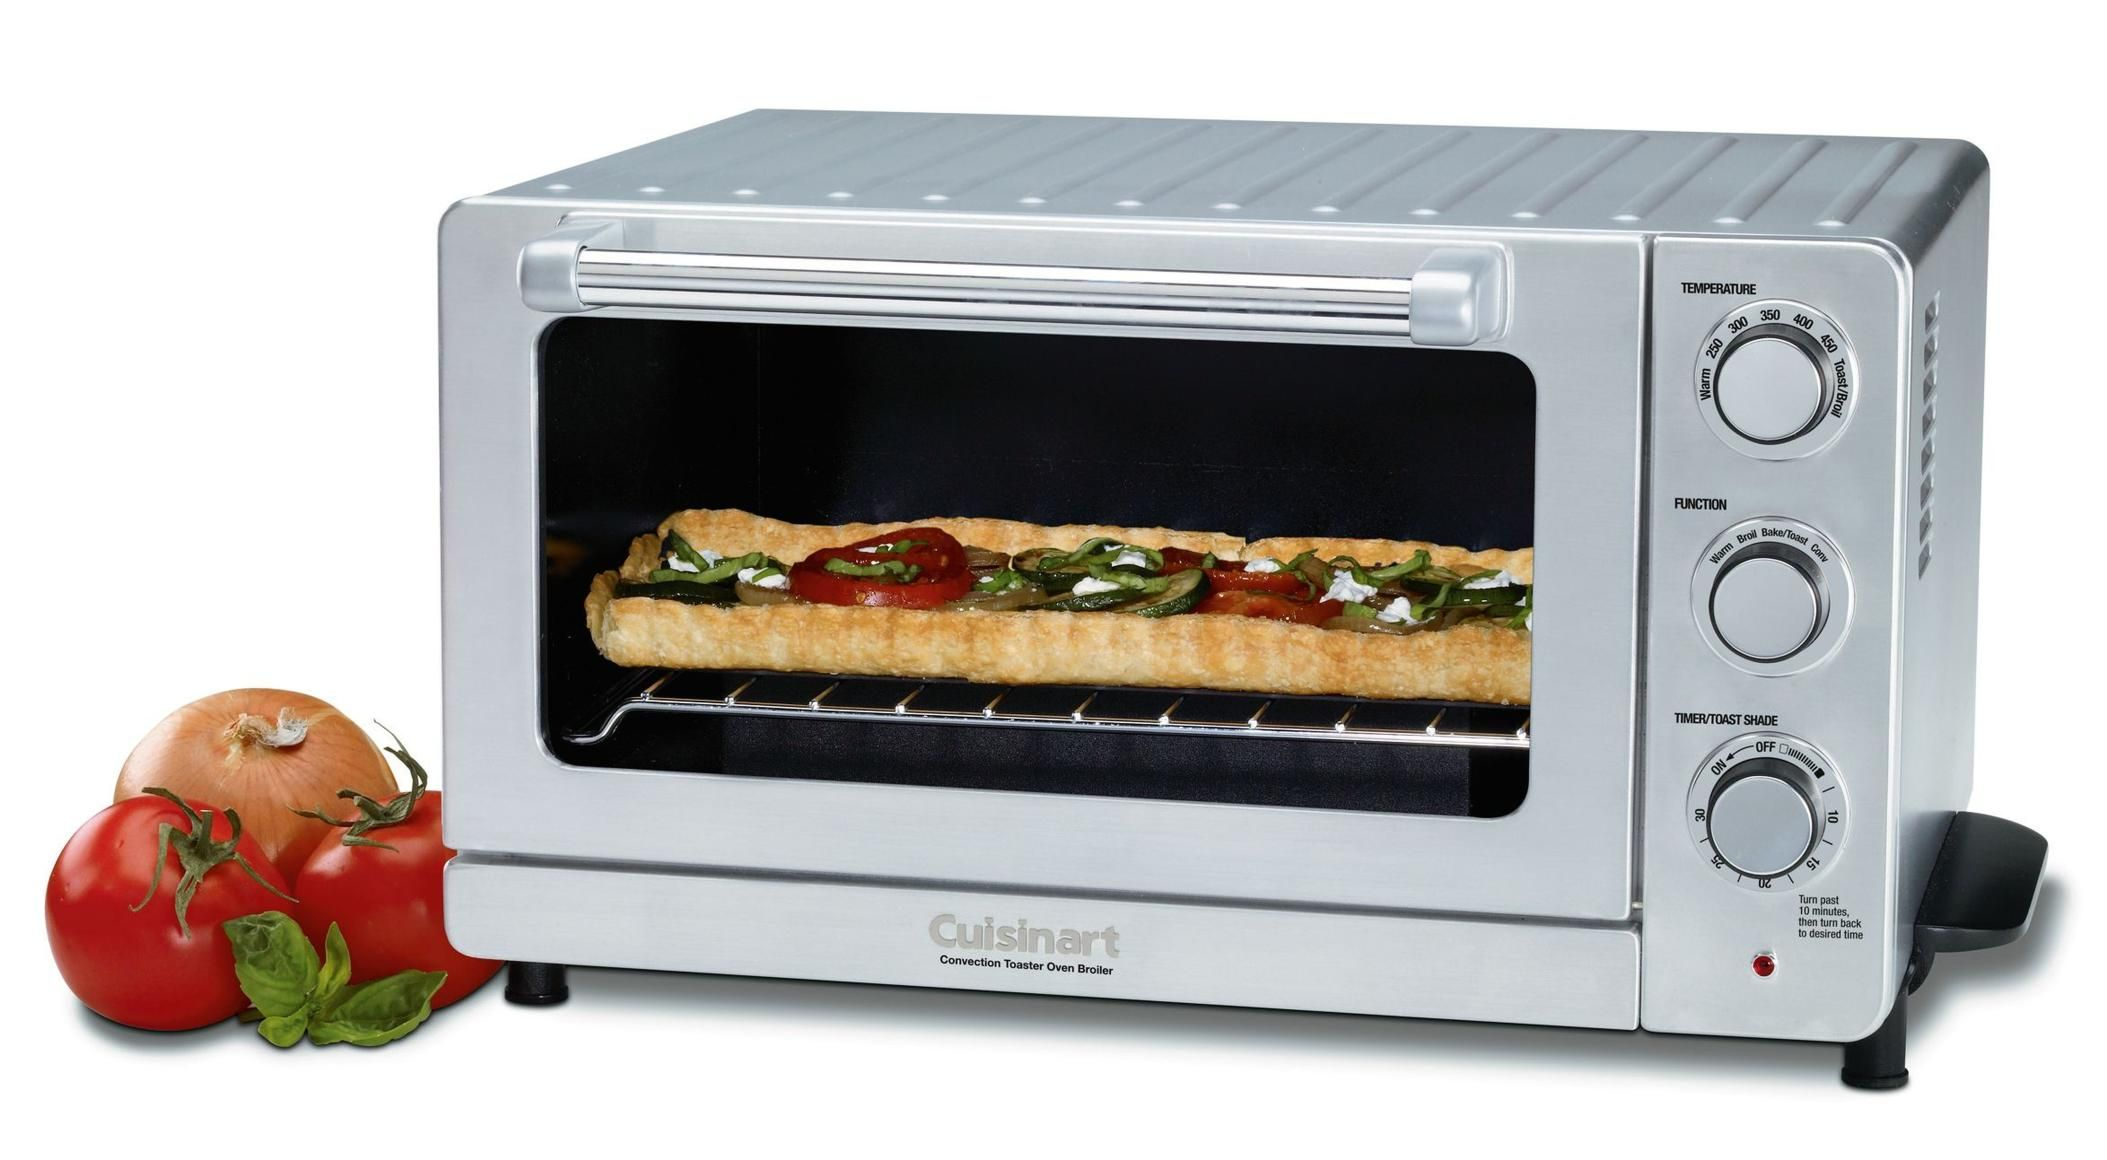 Cuisinart Toaster Oven With Images Convection Toaster Oven